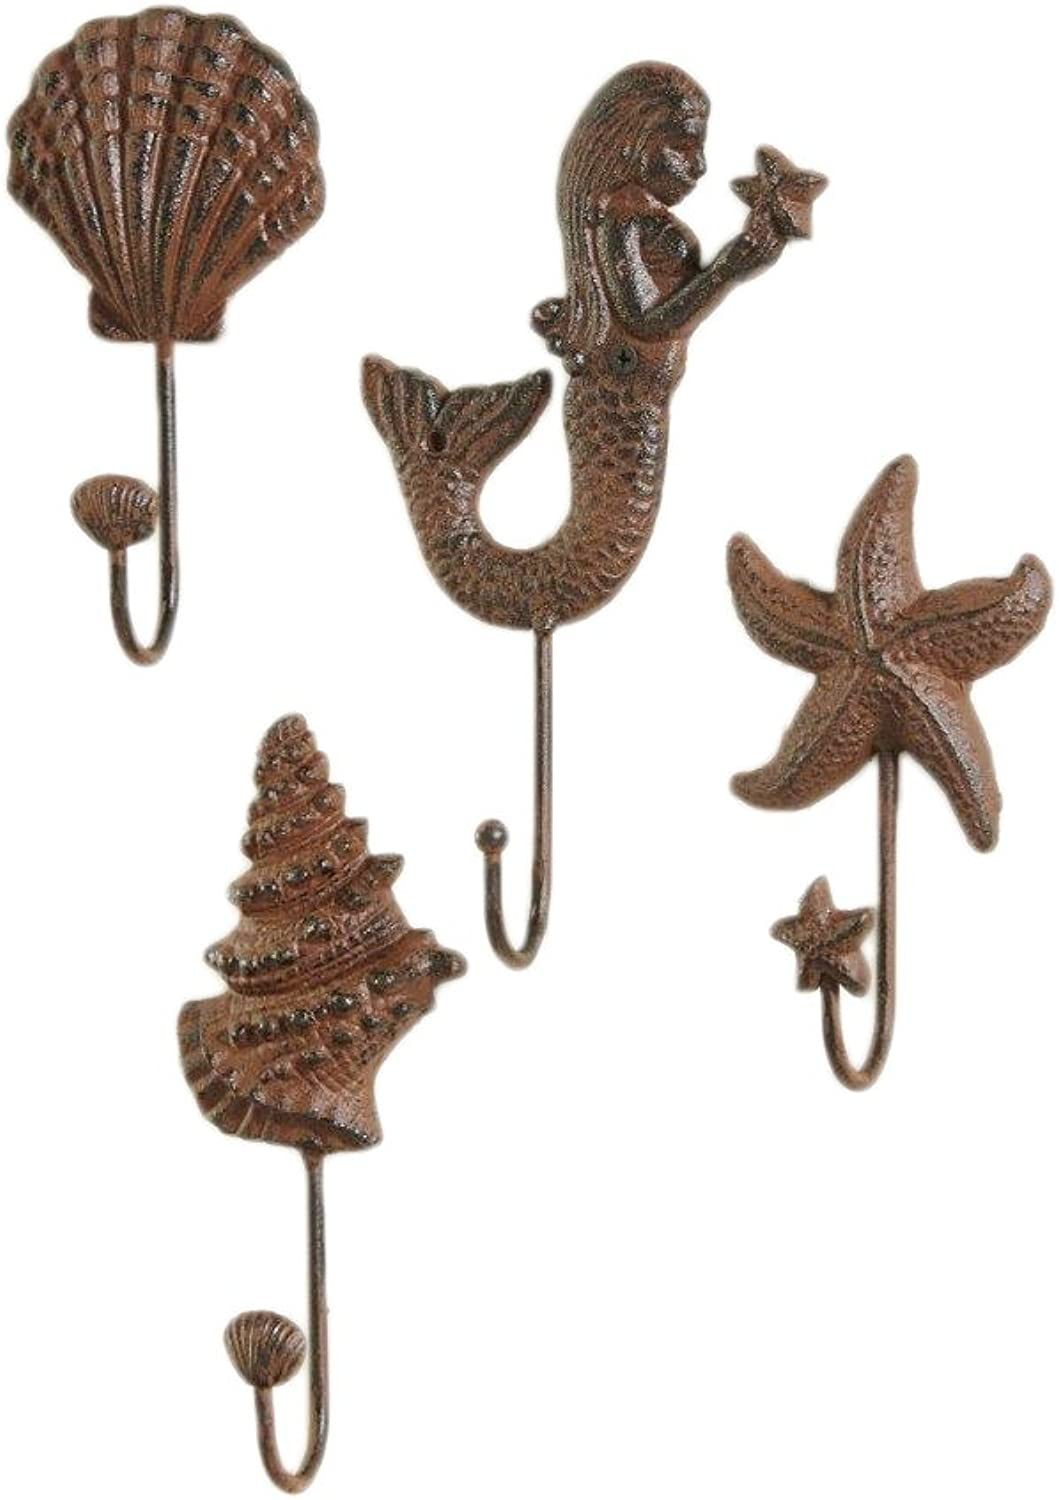 Giftcraft 4 Pc Set of Decorative Key Hooks in Nautical Shapes of Mermaid, Starfish, Conch Shell and Clam